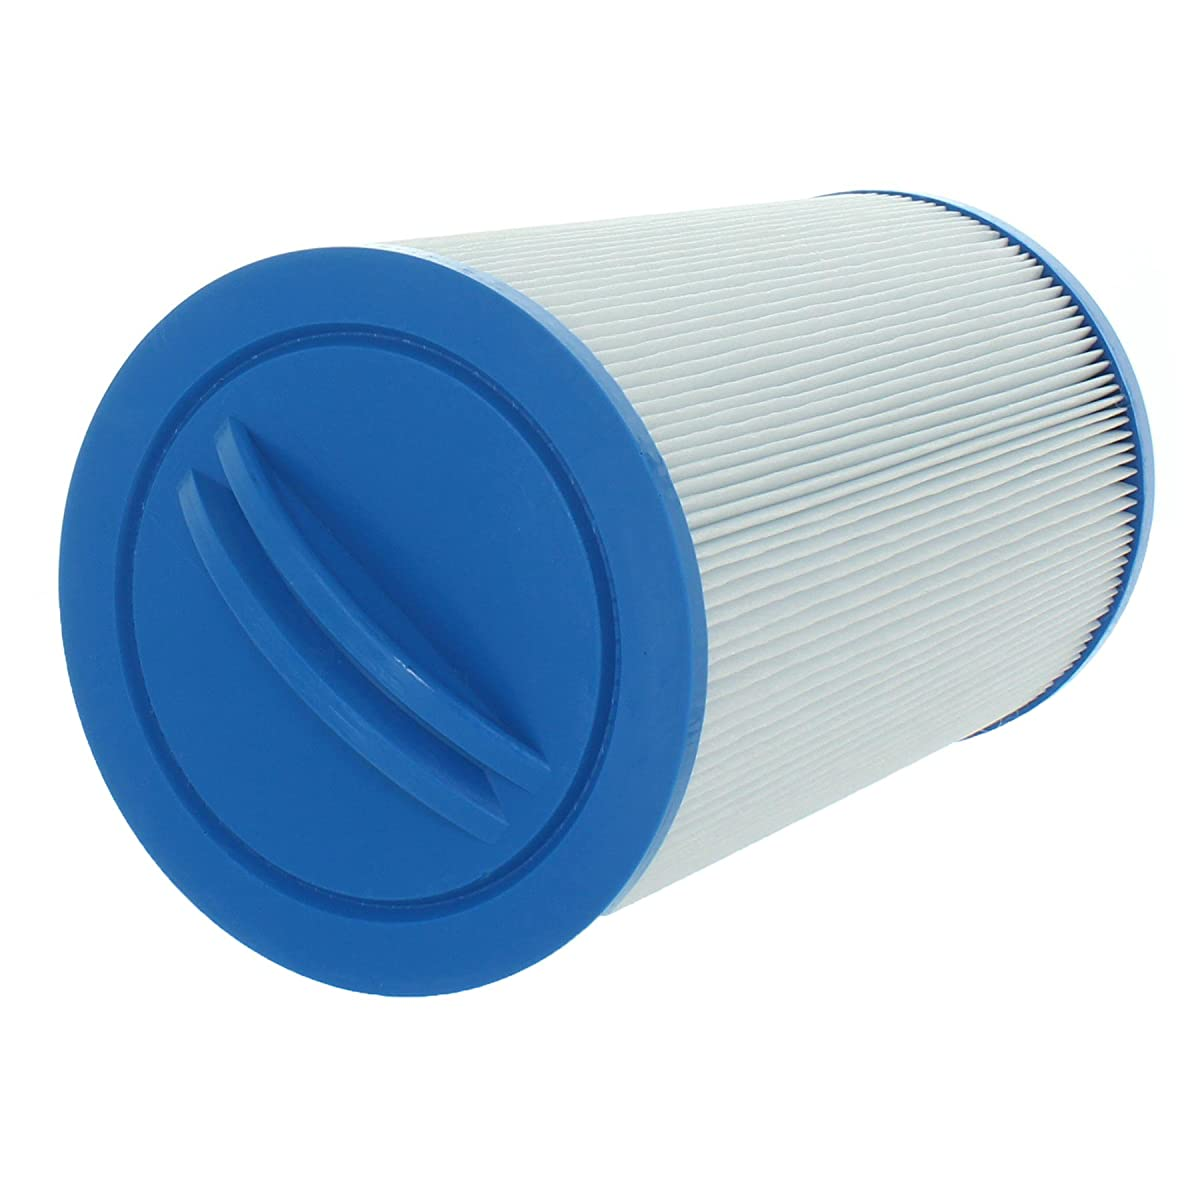 2 pak-filter replaces- PLEATCO PDM25P4 DREAM MAKER GATSBY SPA unicel 4CH-21, HOT TUB CARTRIDGE,filbur FC-0136,